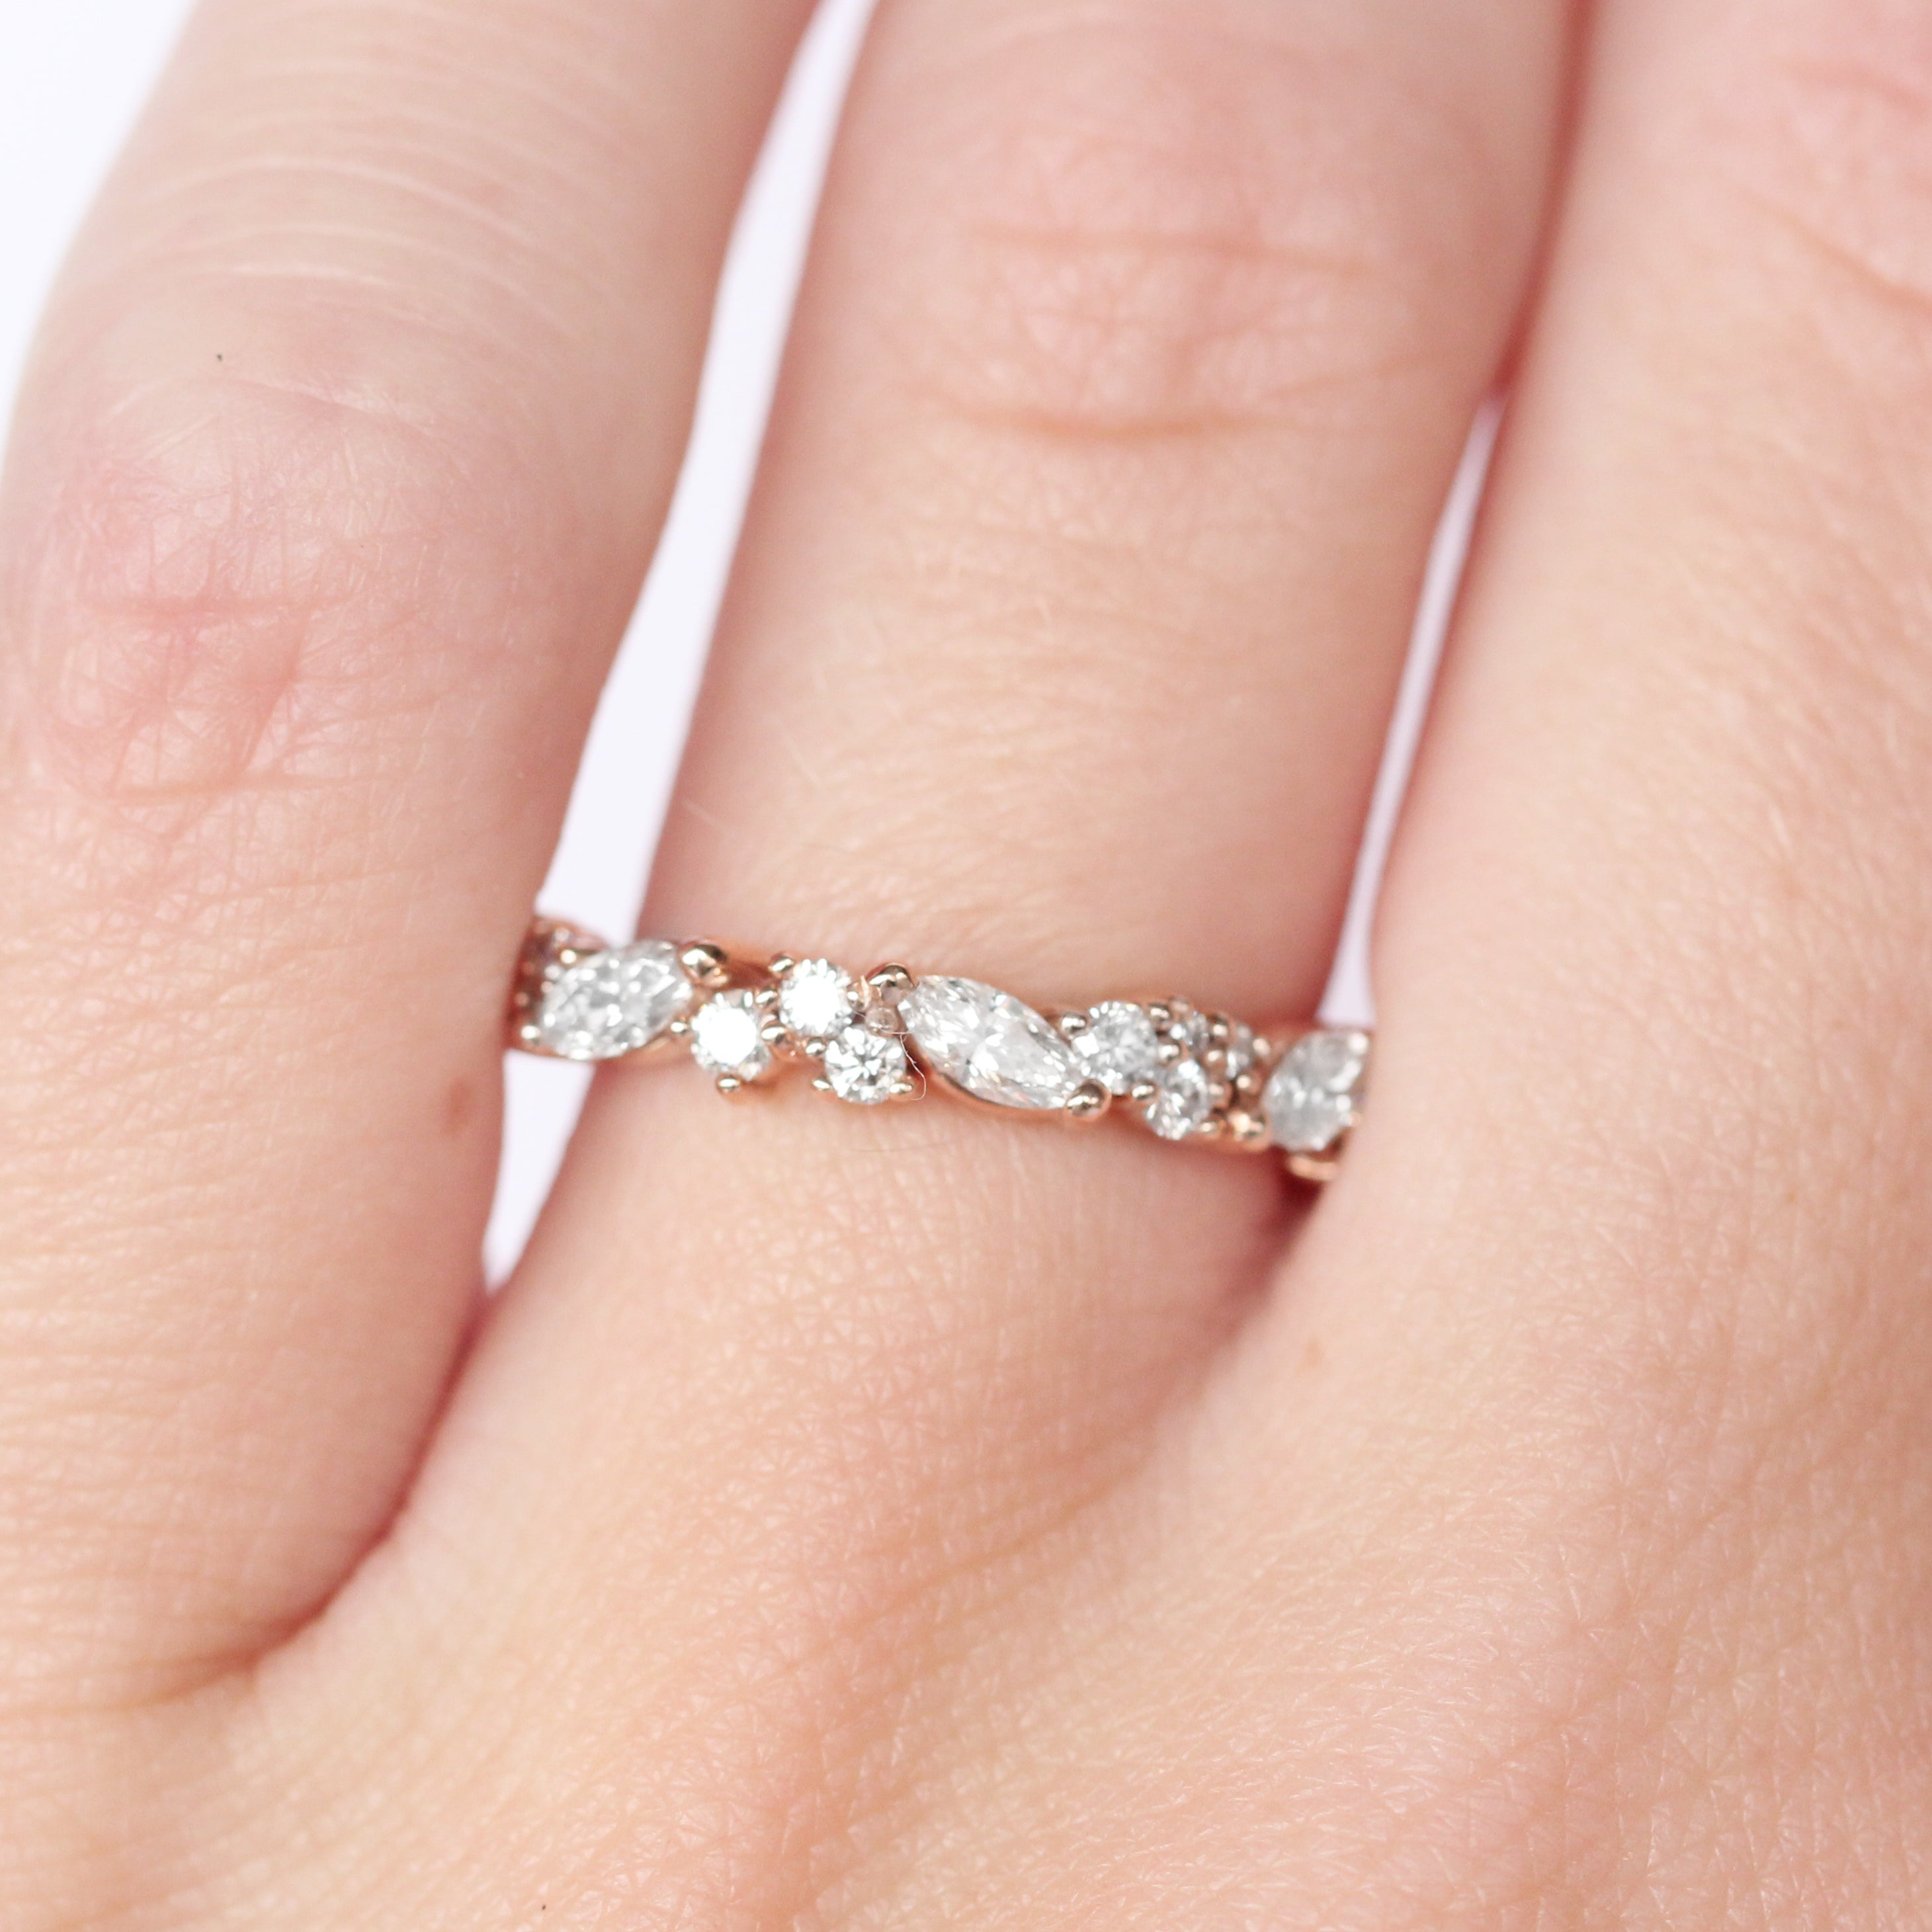 Genevieve Diamond Engagement Ring Band - White diamonds - Celestial Diamonds ® by Midwinter Co.